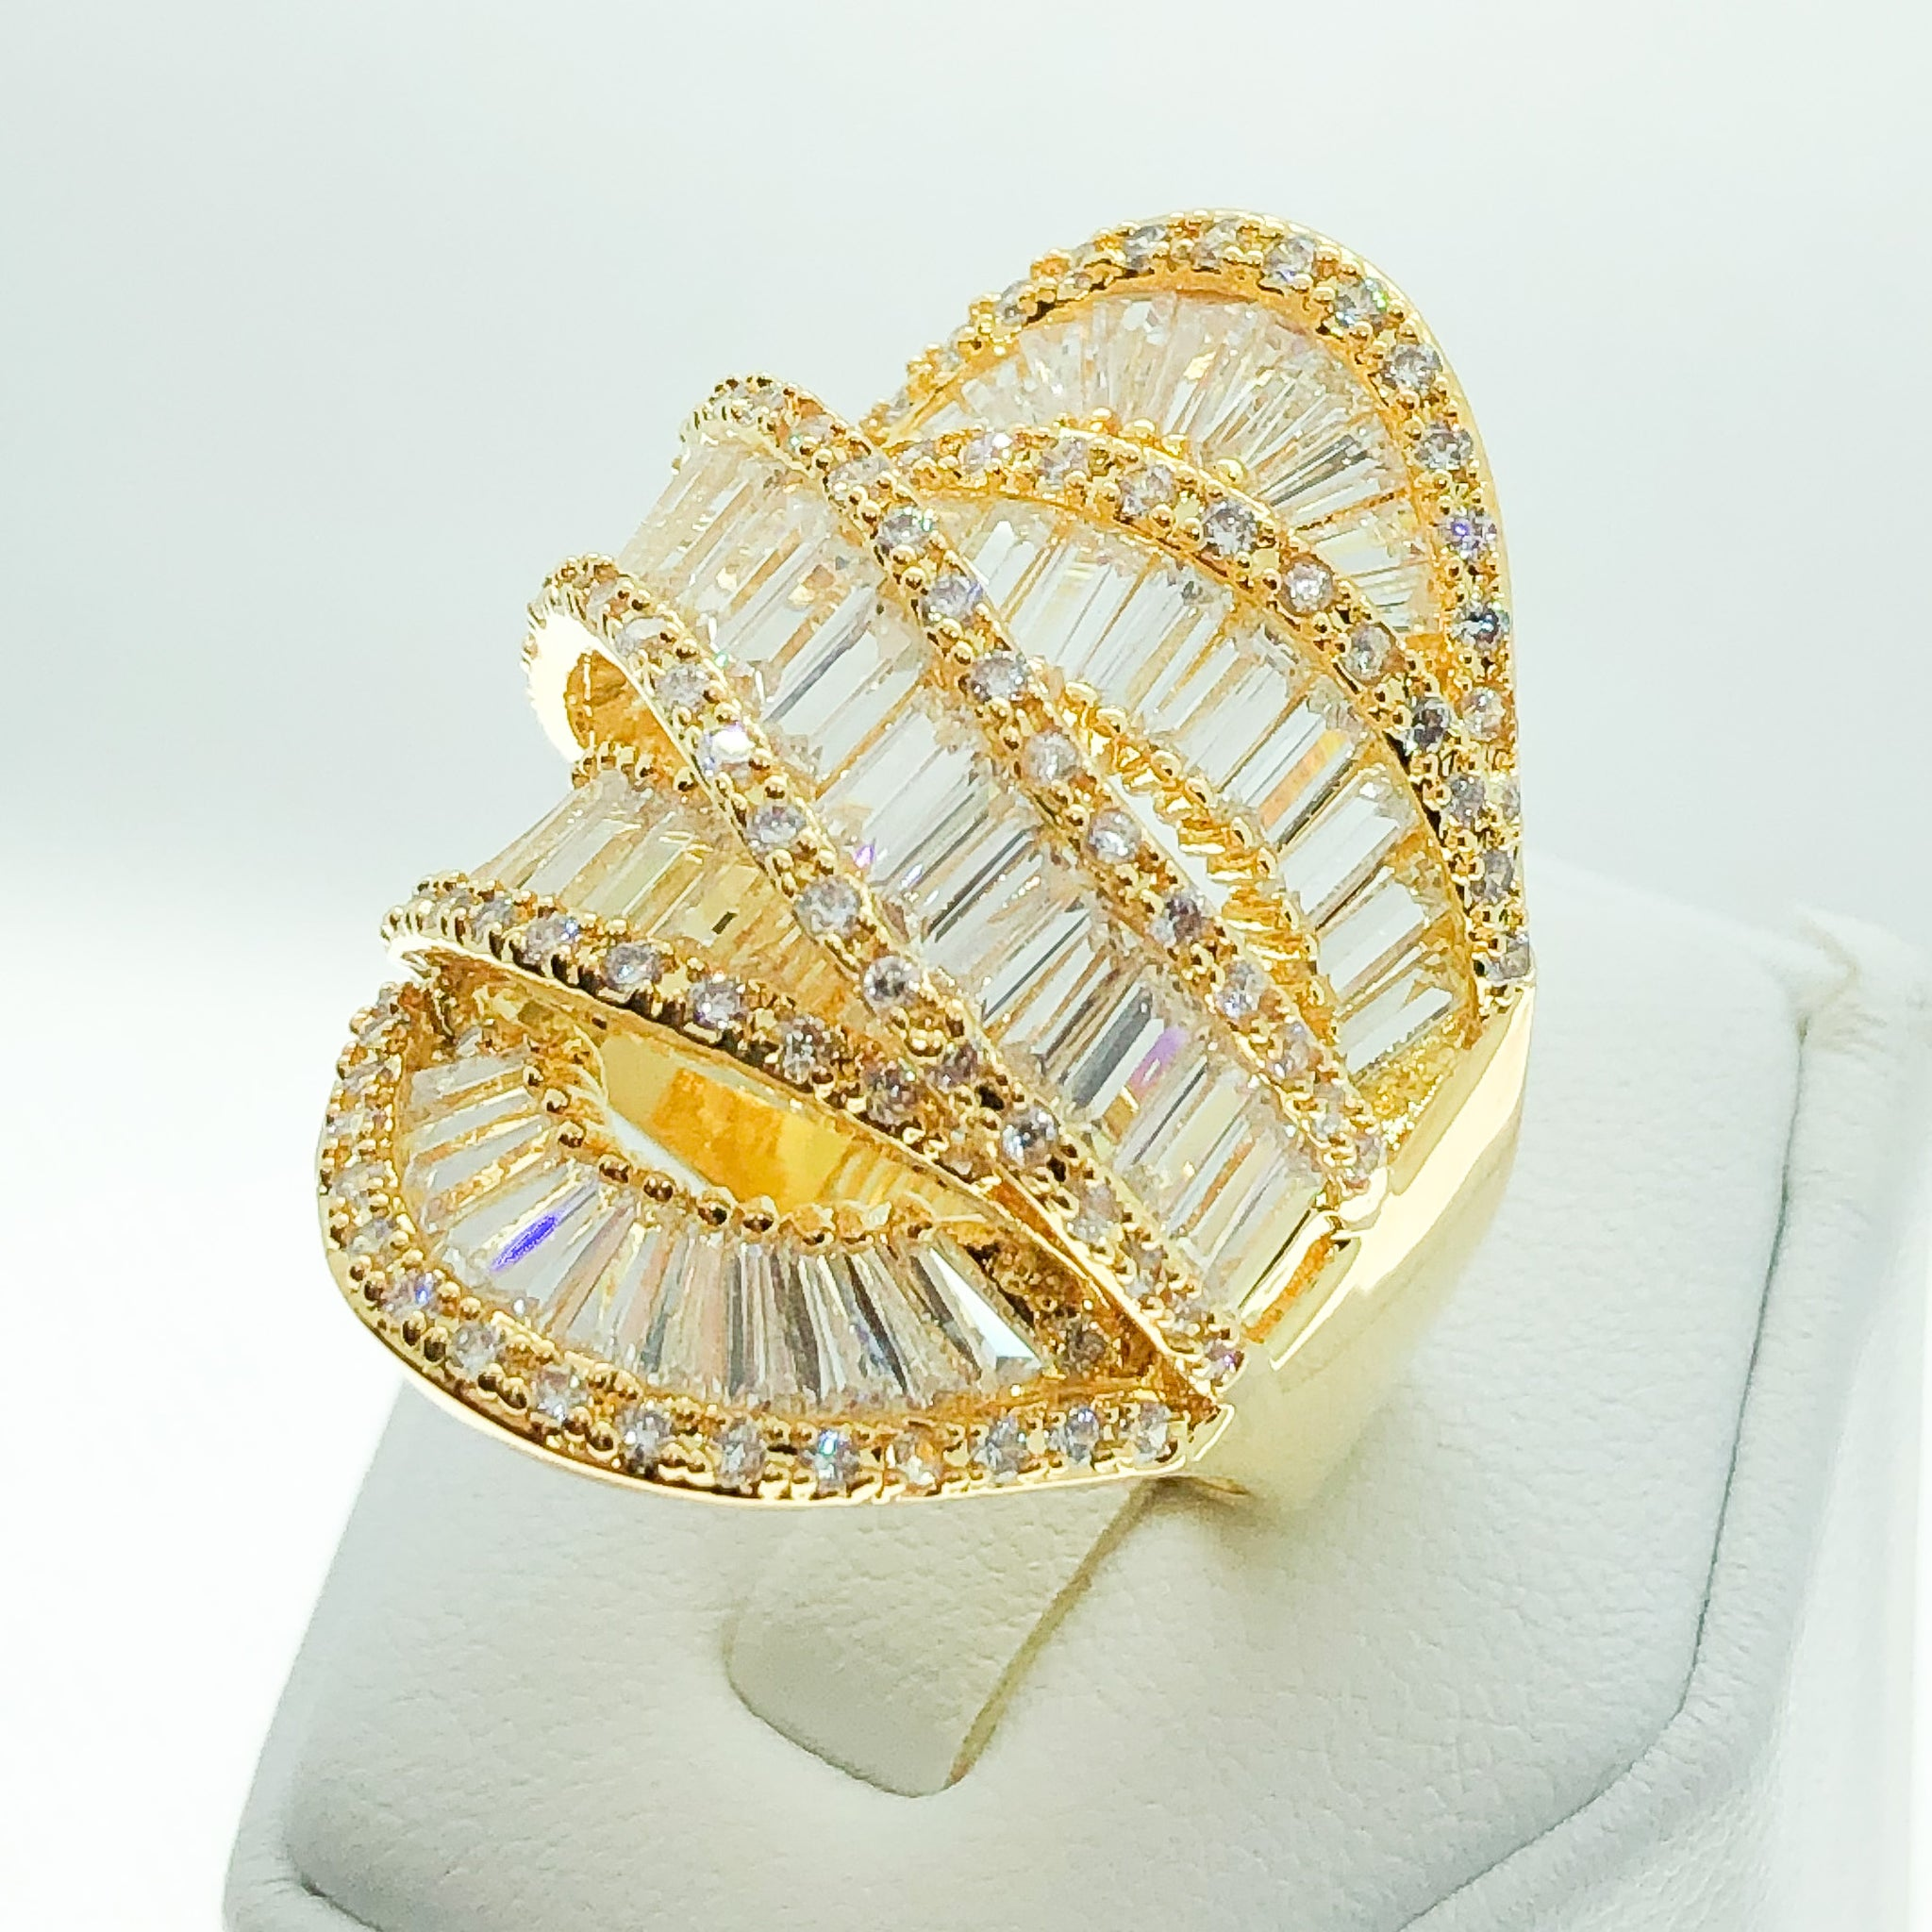 ID:R7010 Women 18K Yellow Gold GF Fashion Jewelry Excellent Design Clear Stones Luxury Cluster Ring